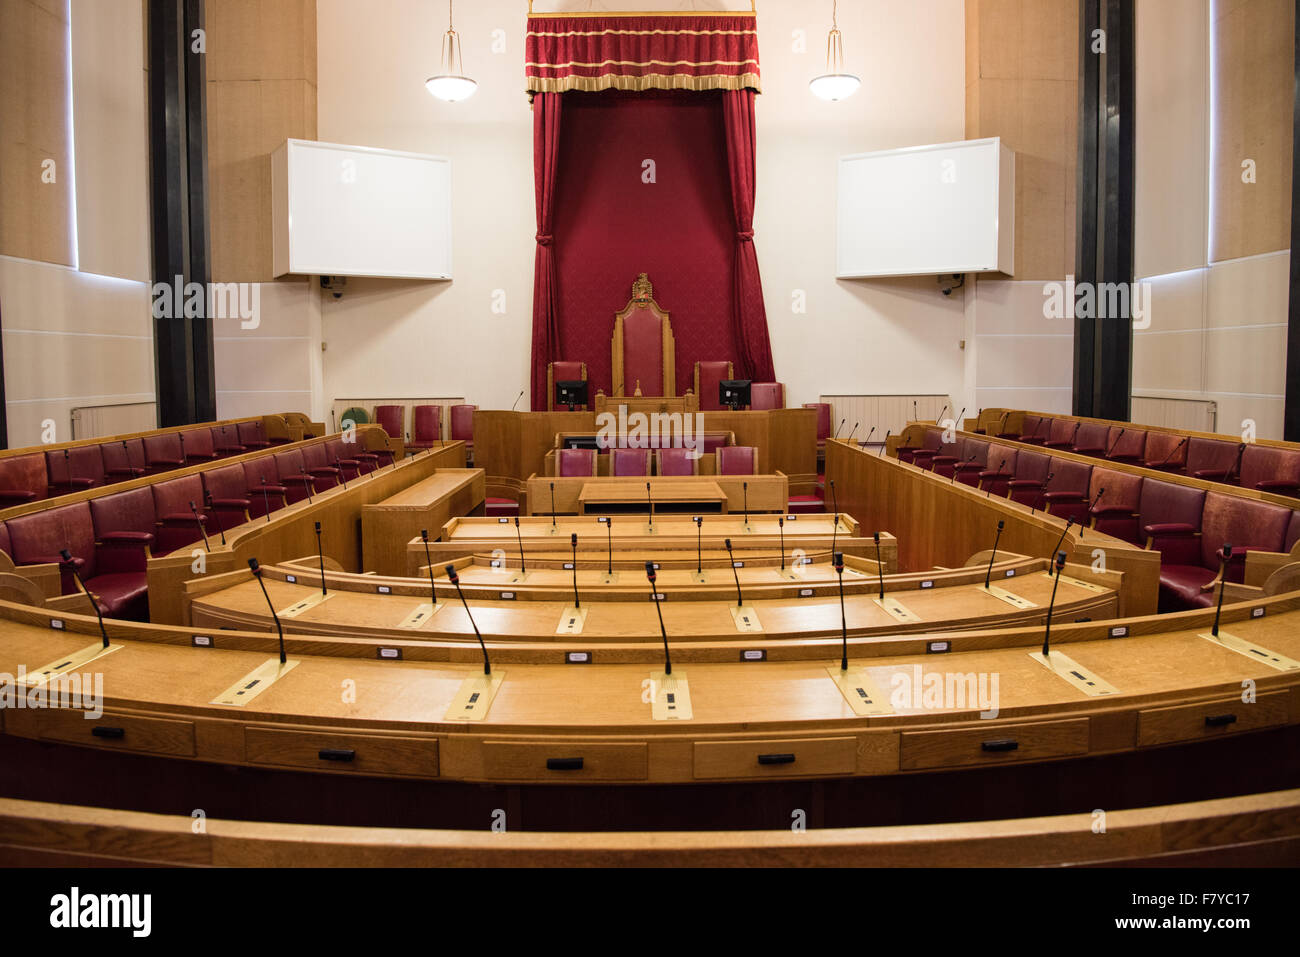 View of Dudley Council chamber in the council house where councillors meet to make democratic decisions - Stock Image